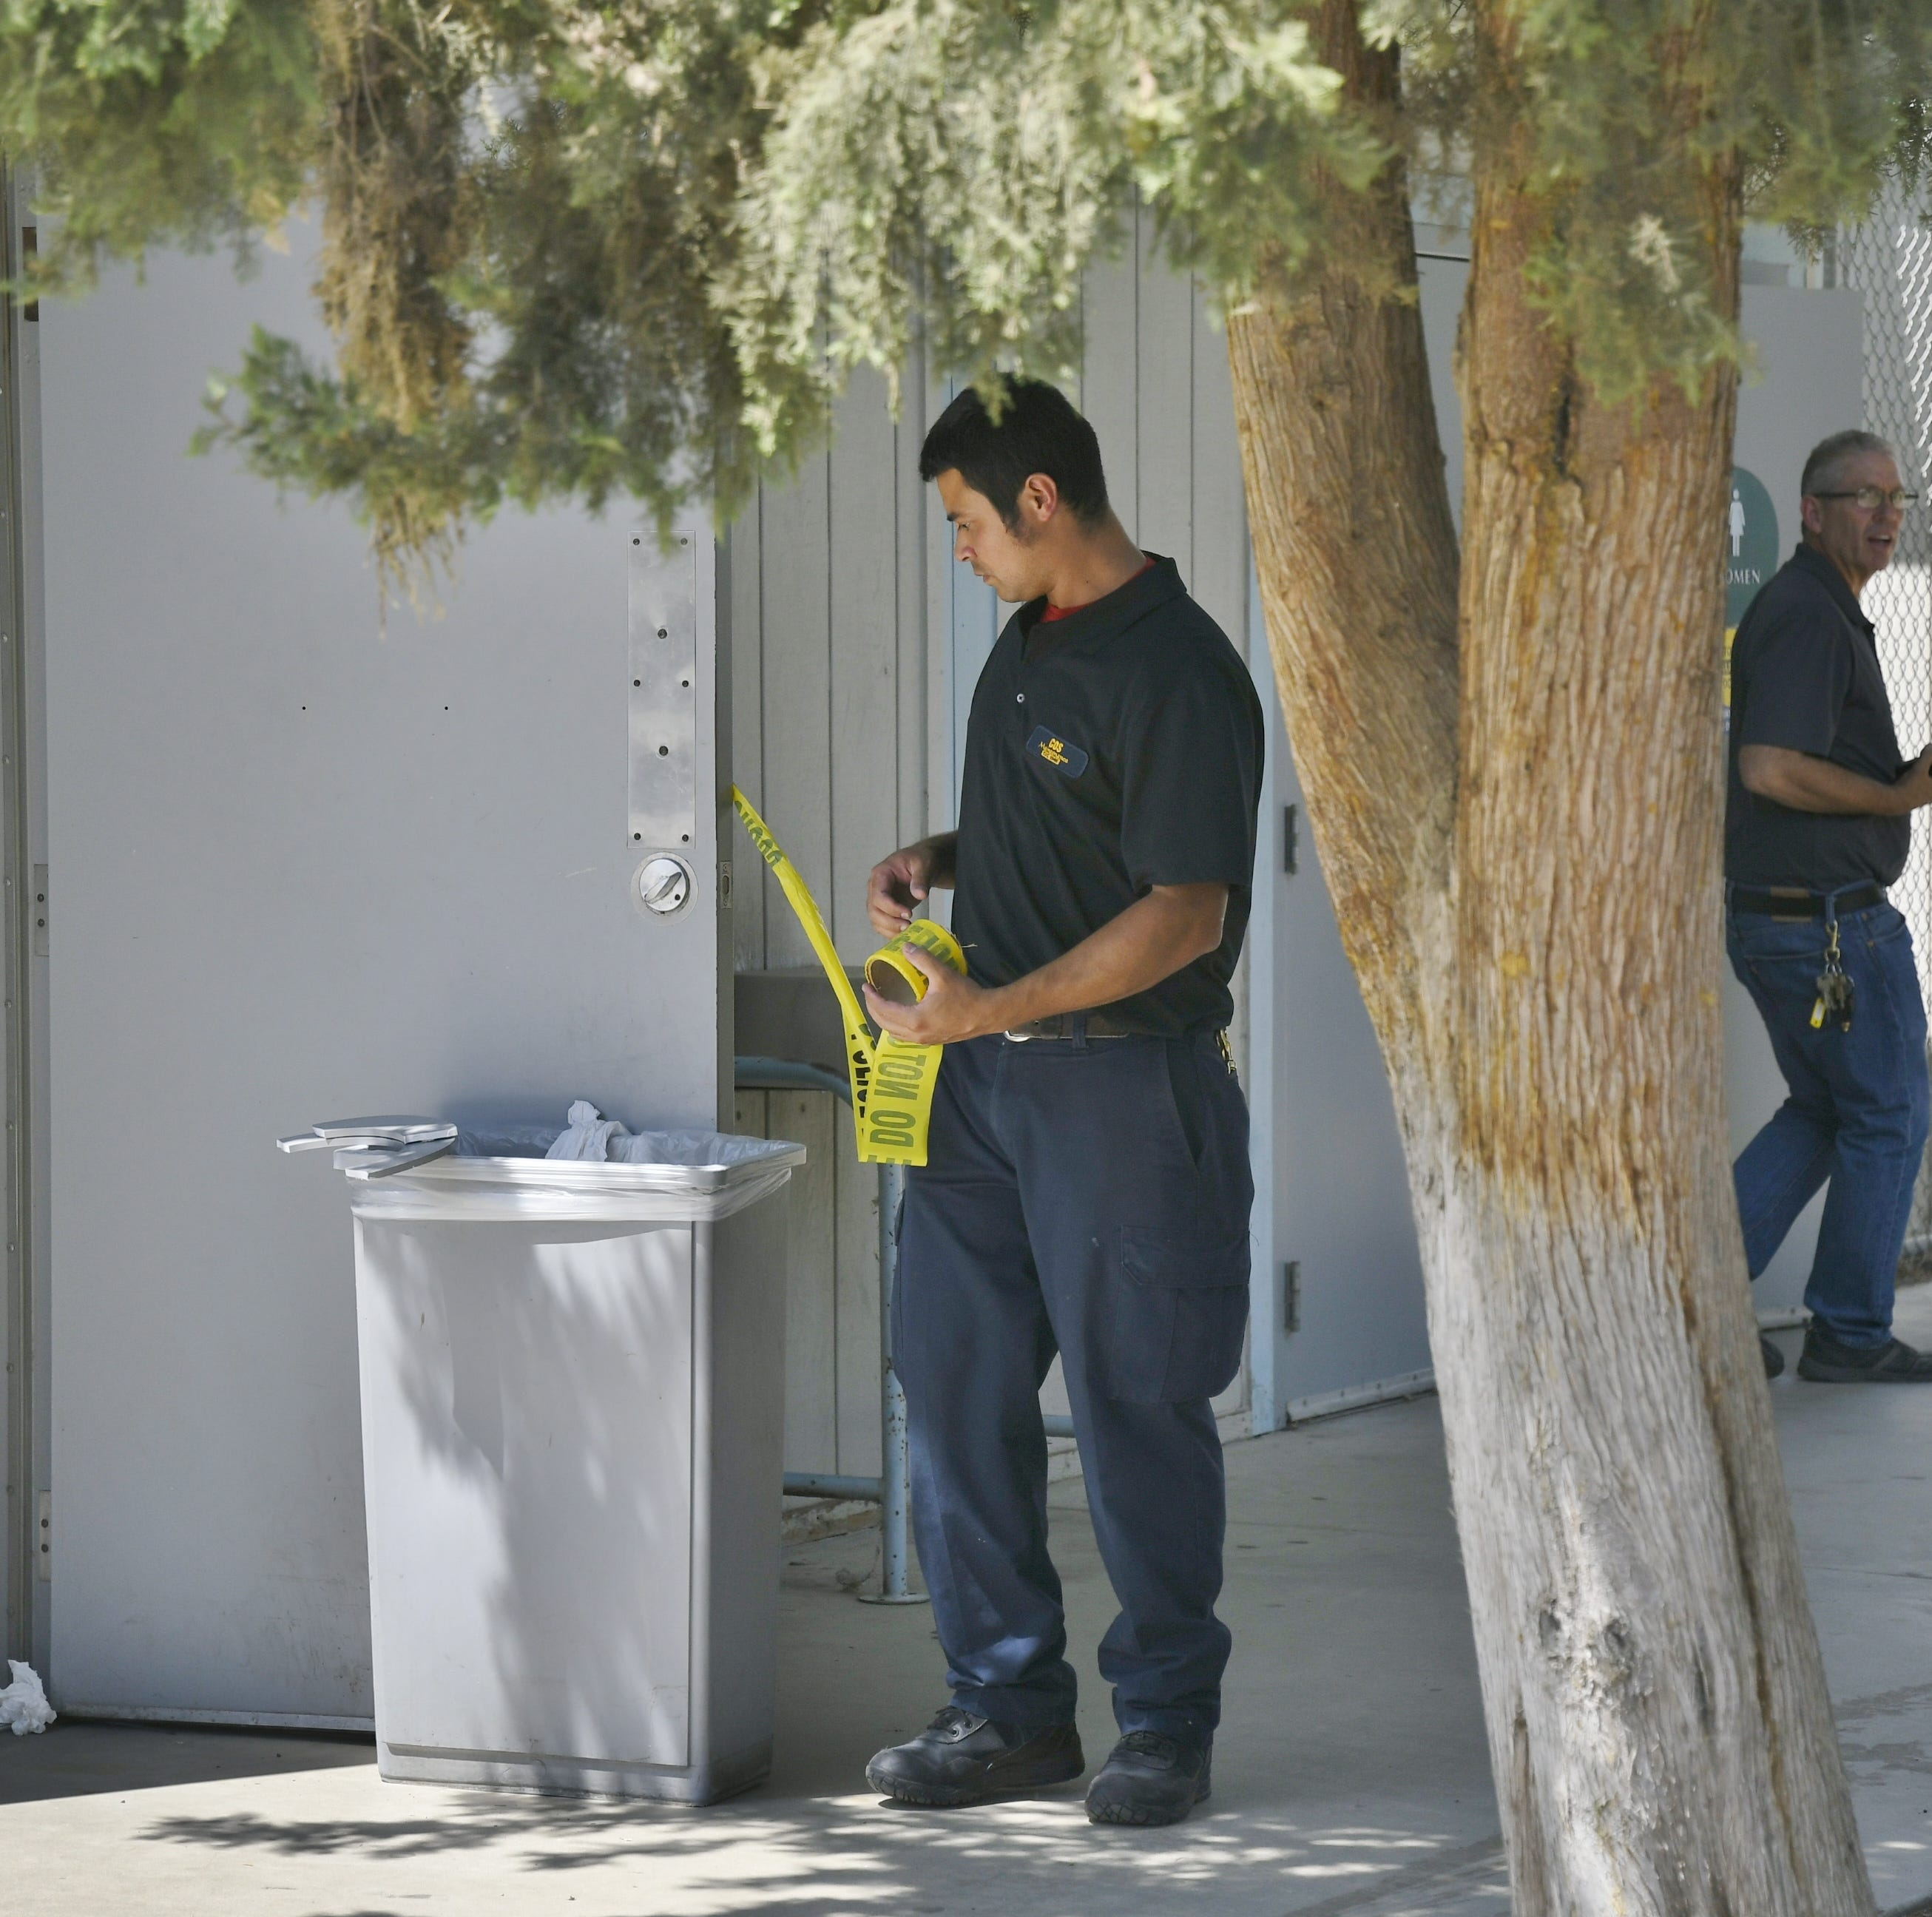 Five fires set in Visalia COS restrooms, 'pretty juvenile stuff'